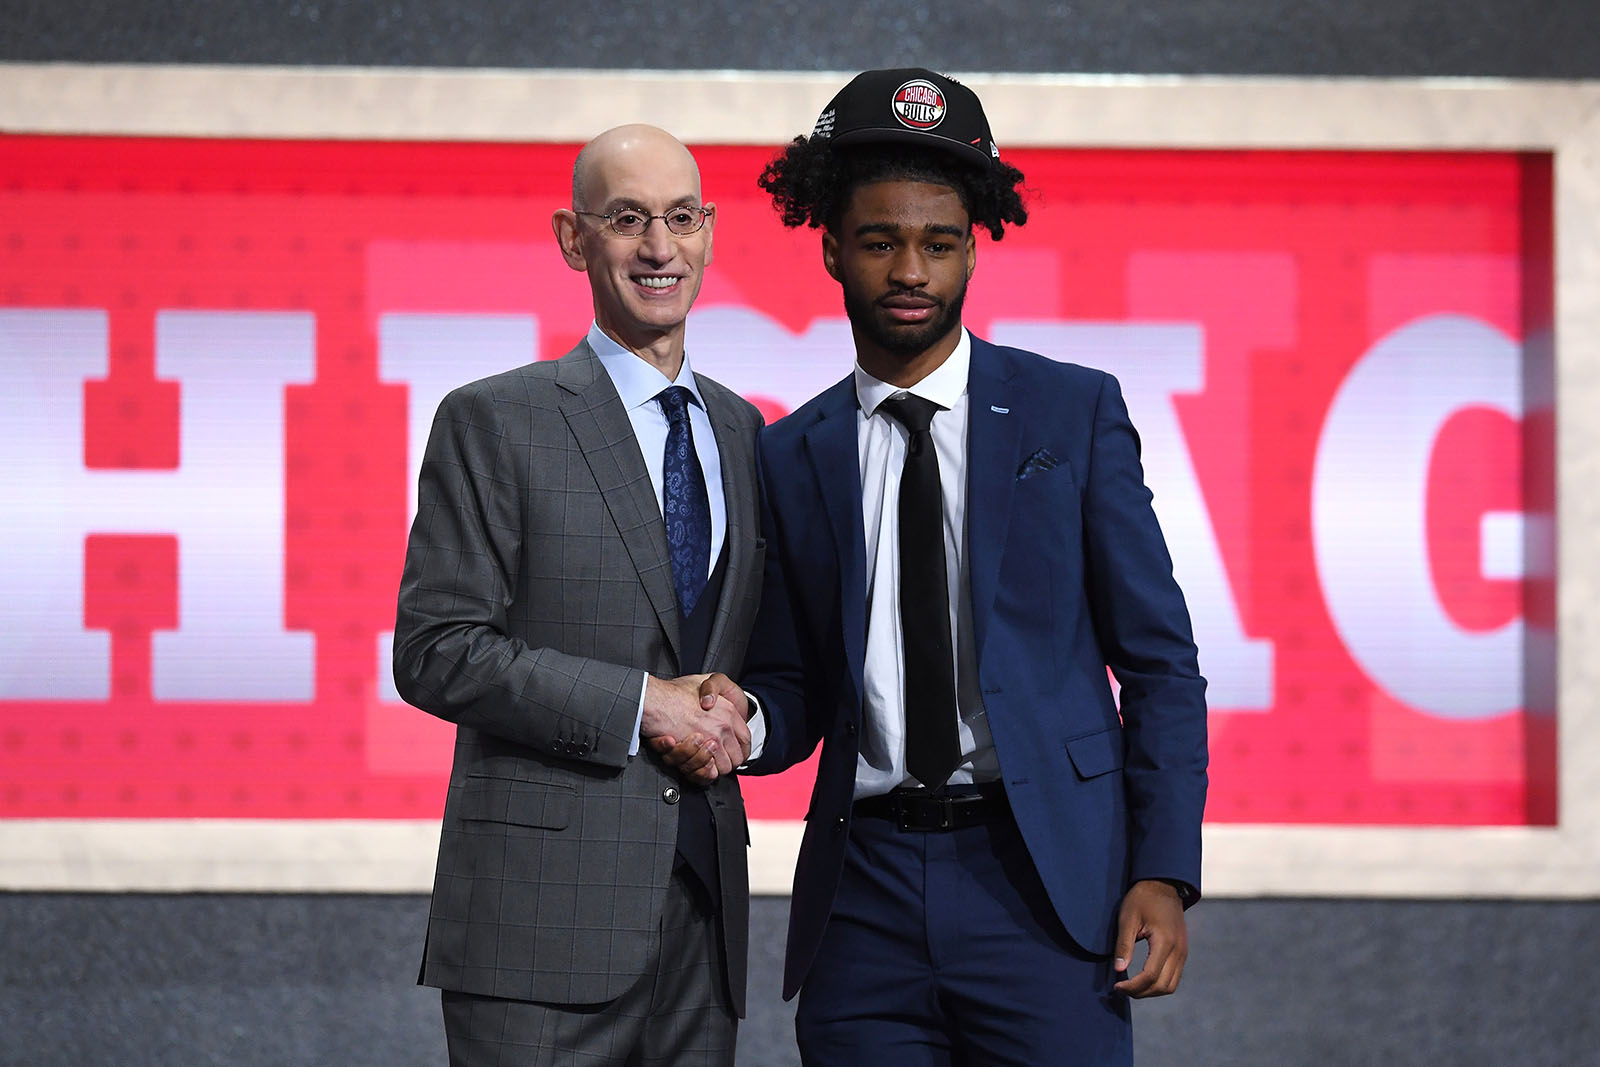 0aada20679d Coby White, taken as the 7th pick in the draft, surpassed Michael Jordan's  North Carolina freshman scoring record